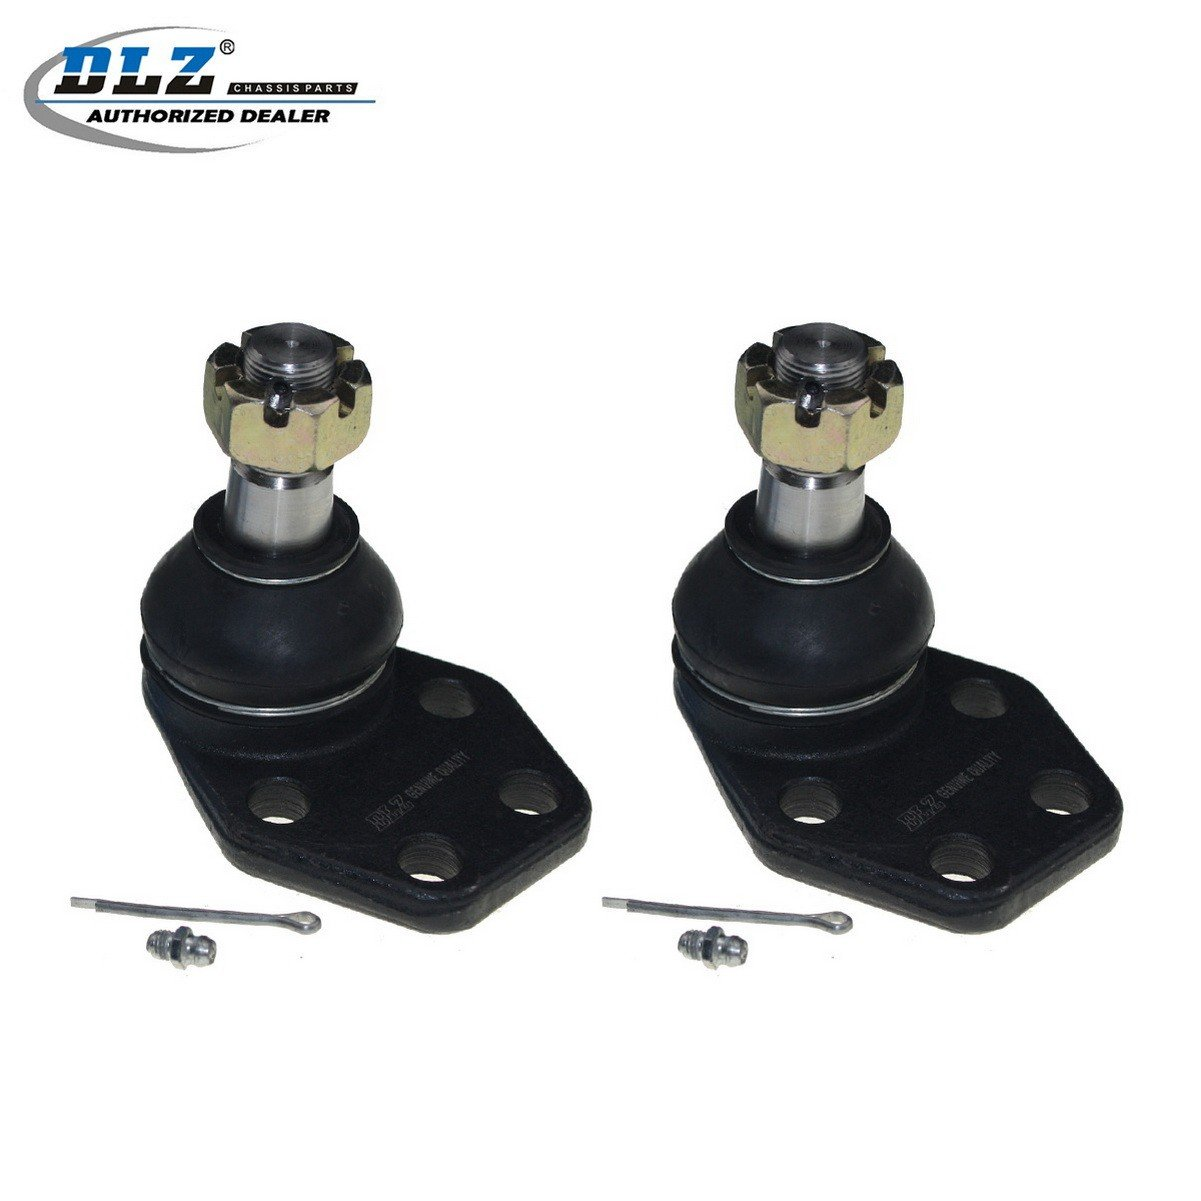 DLZ 2 Pcs Front Lower Ball Joint Compatible with 2000 2001 2002 Dodge Ram 2500 3500 RWD Partsgoing